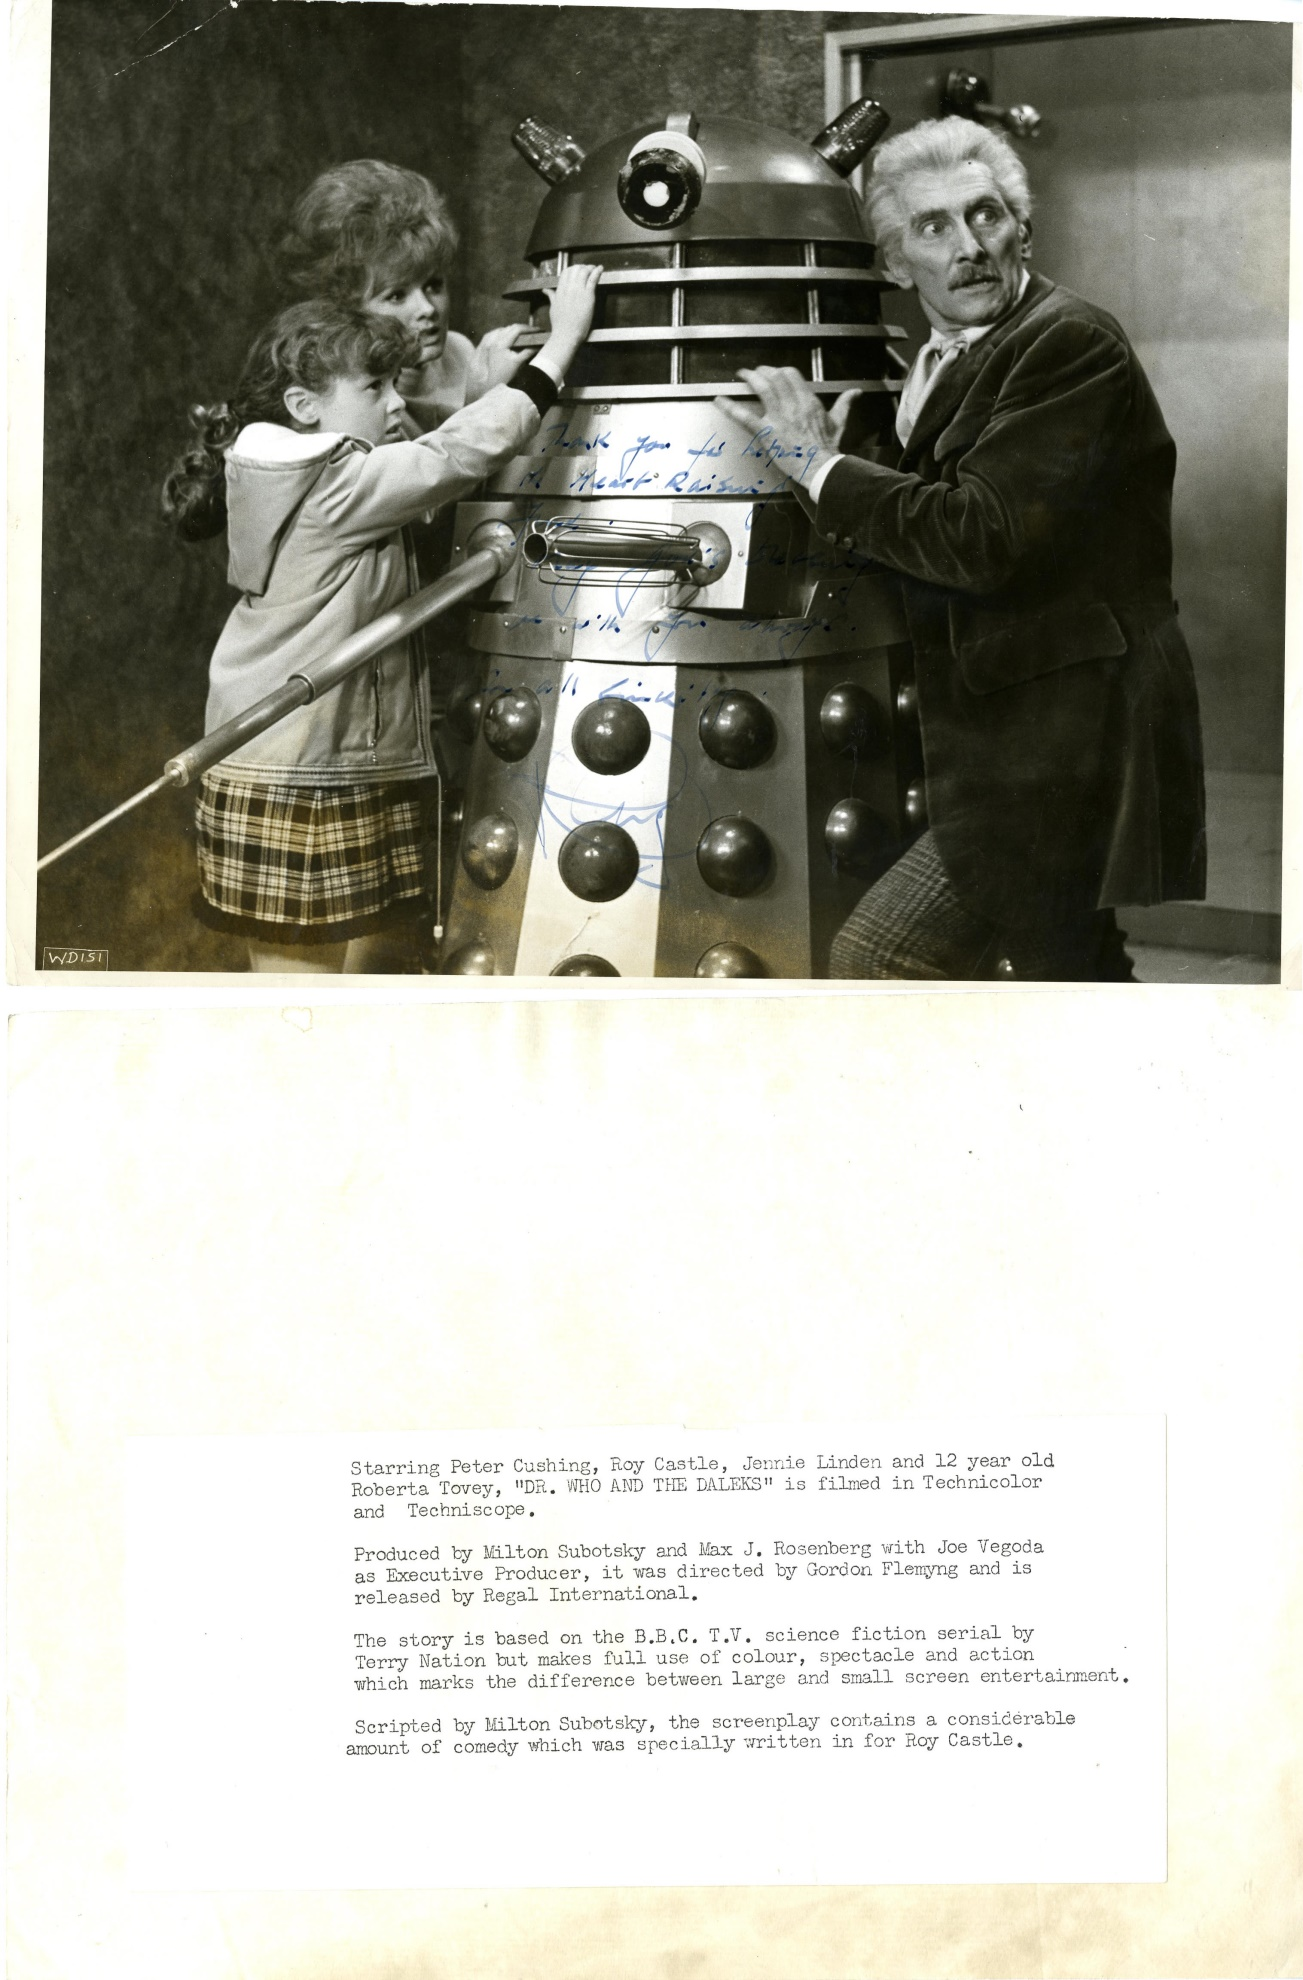 Promotional photo signed by Peter Cushing